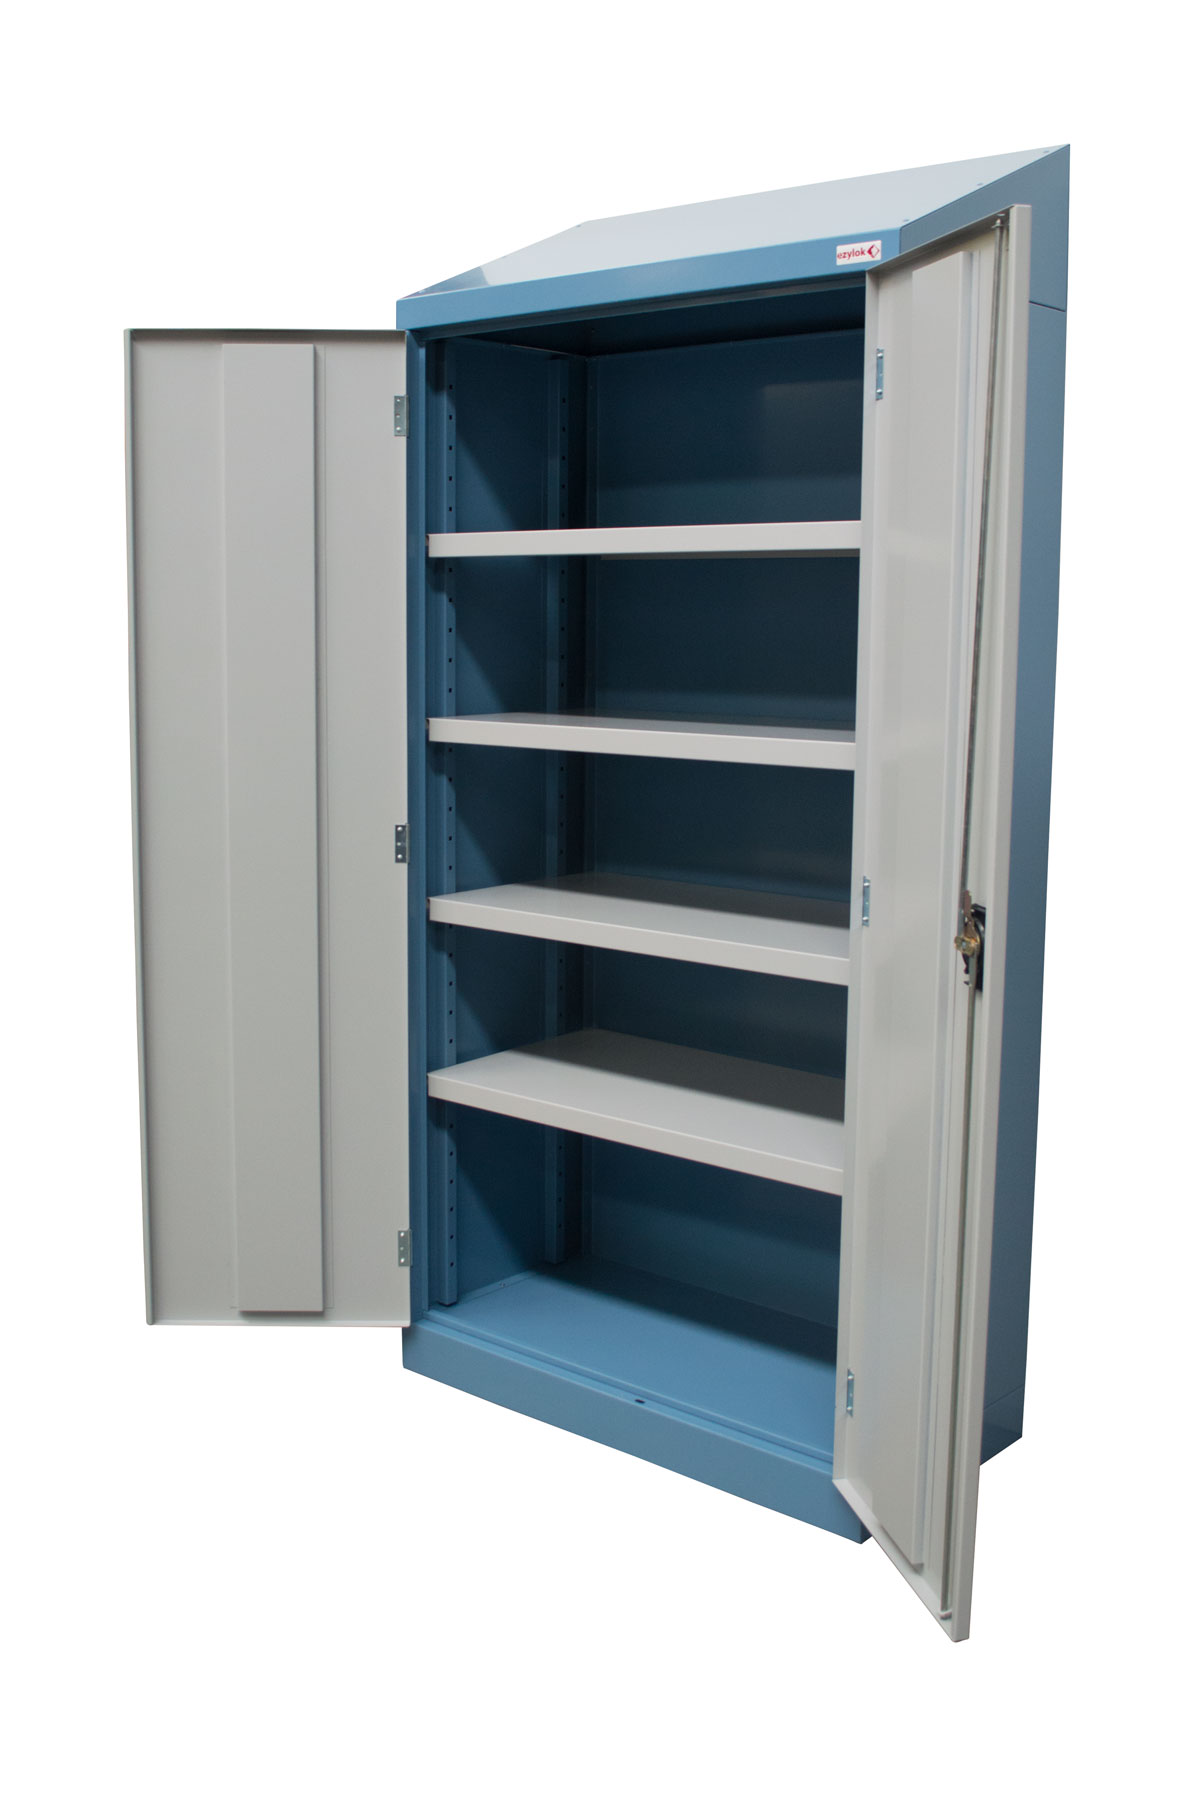 822002-slope-top-factory-cupboard-open-angle-right.jpg